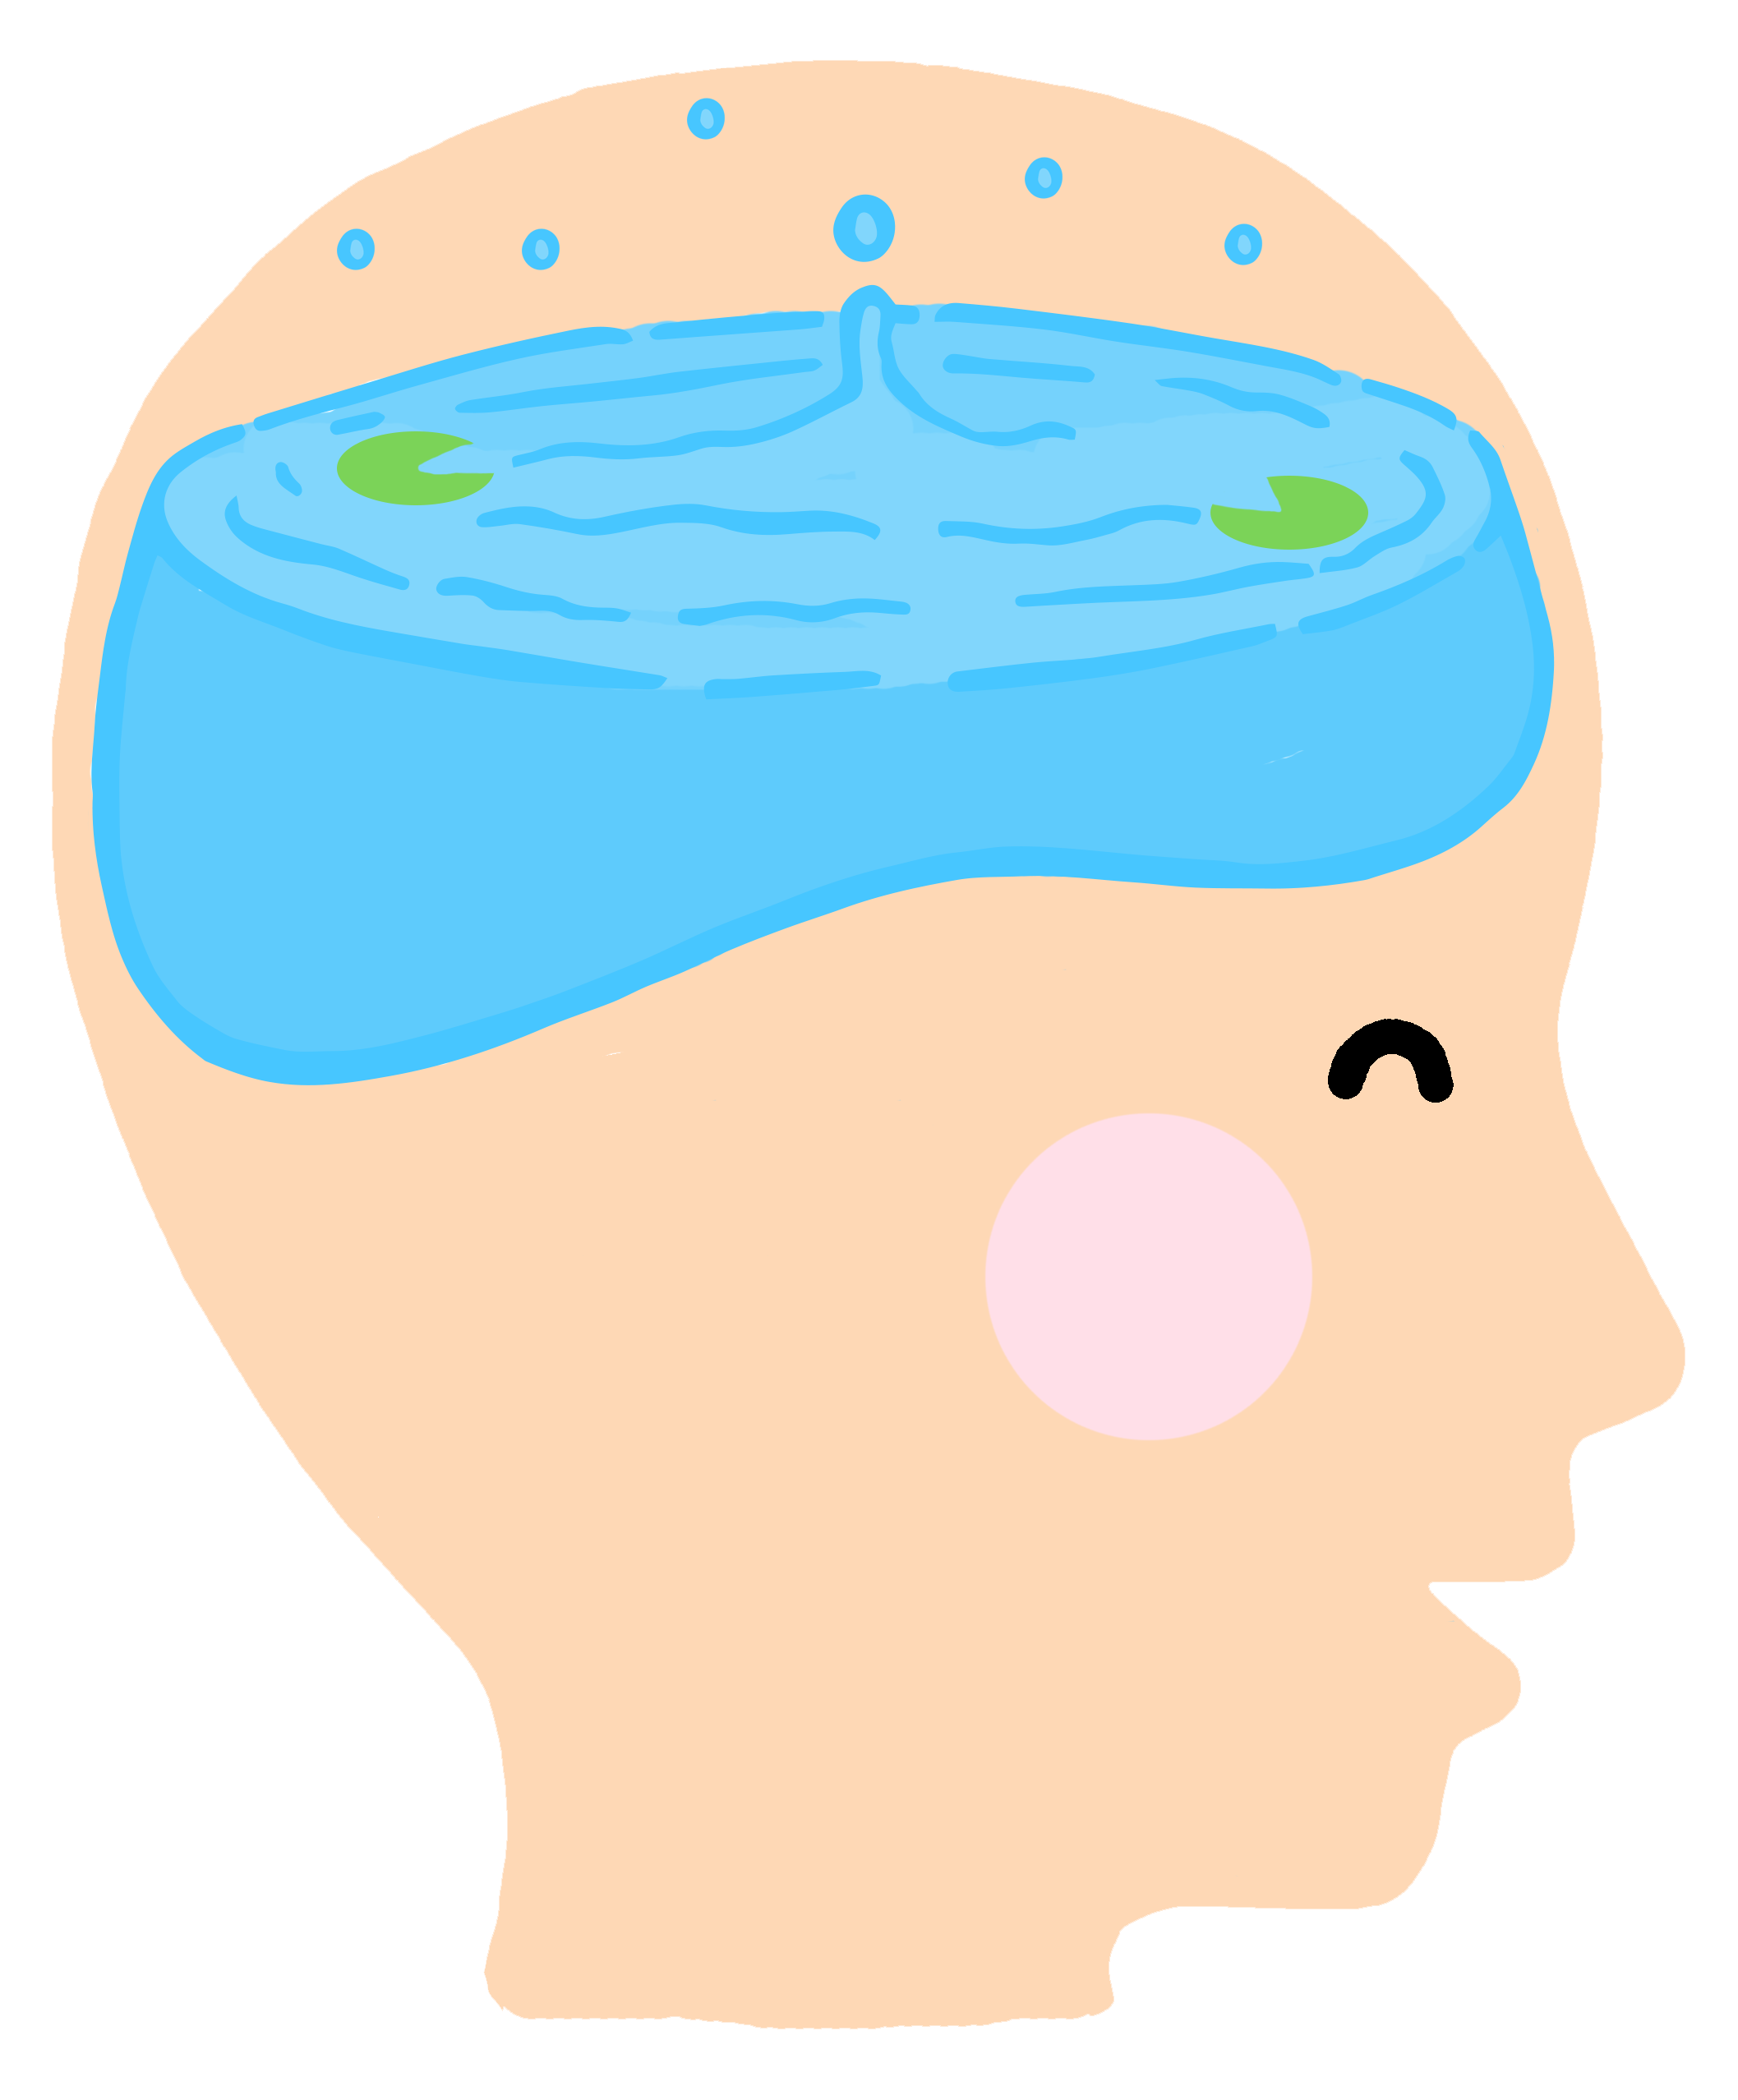 Mind like water illustration